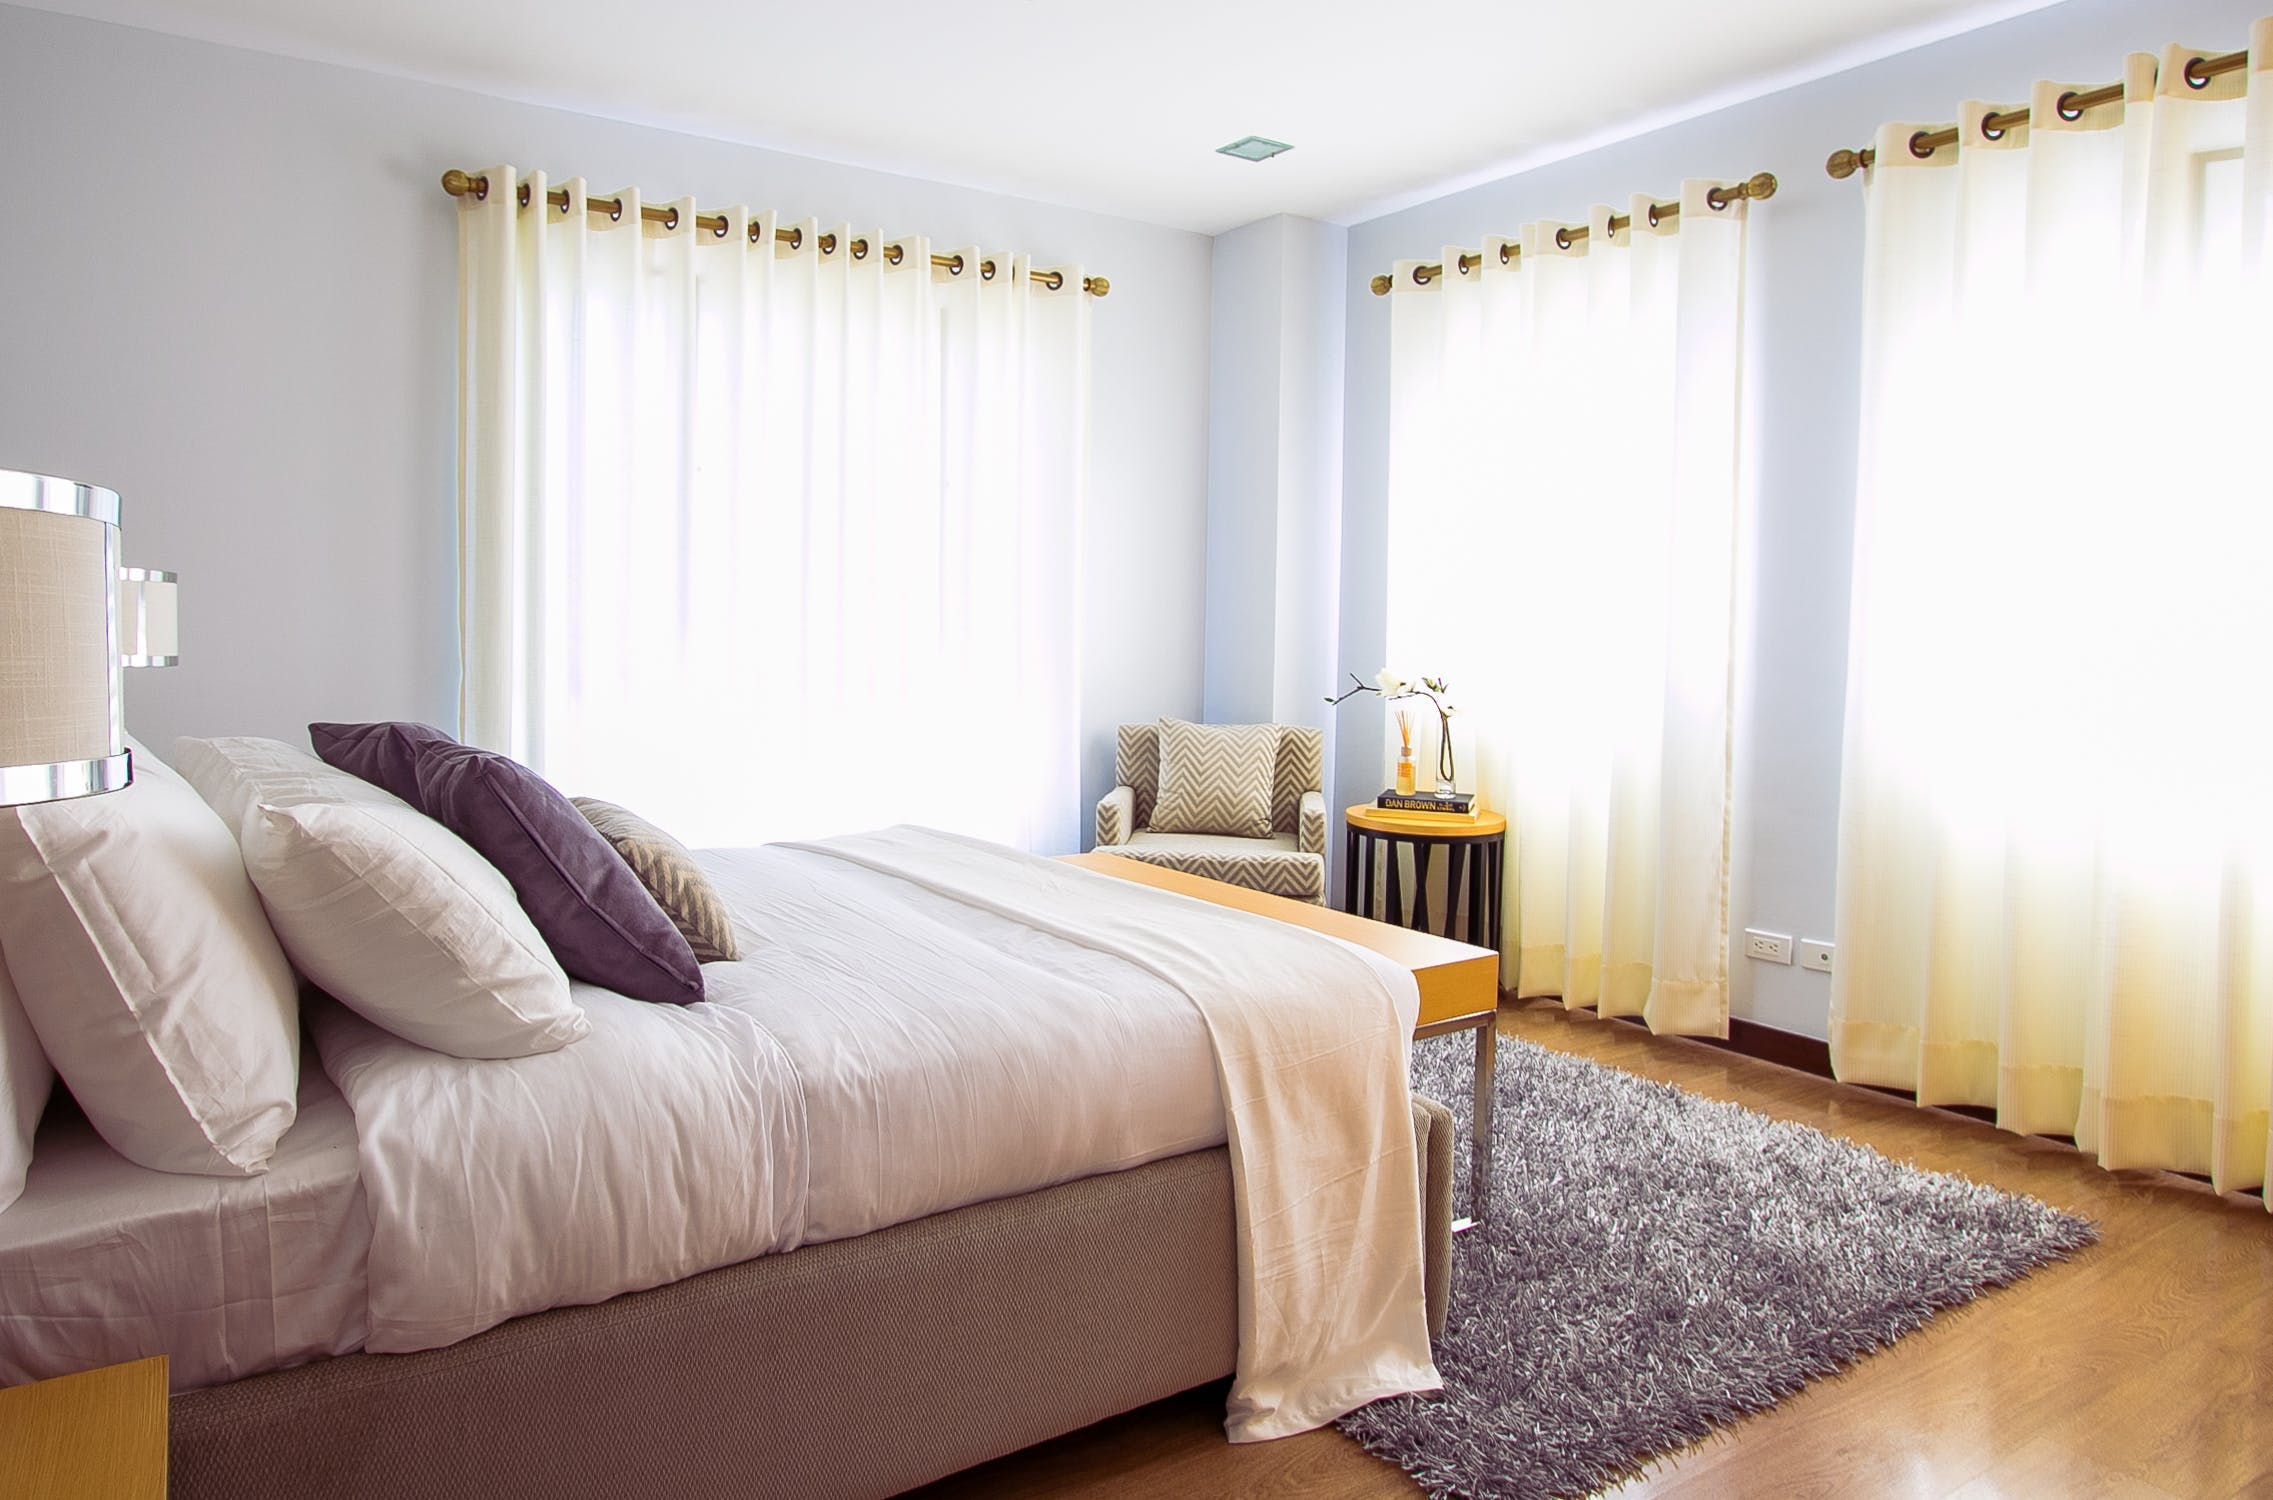 Modern bedroom, gauzy white eyelet curtains on poles allowing sunlight to stream in